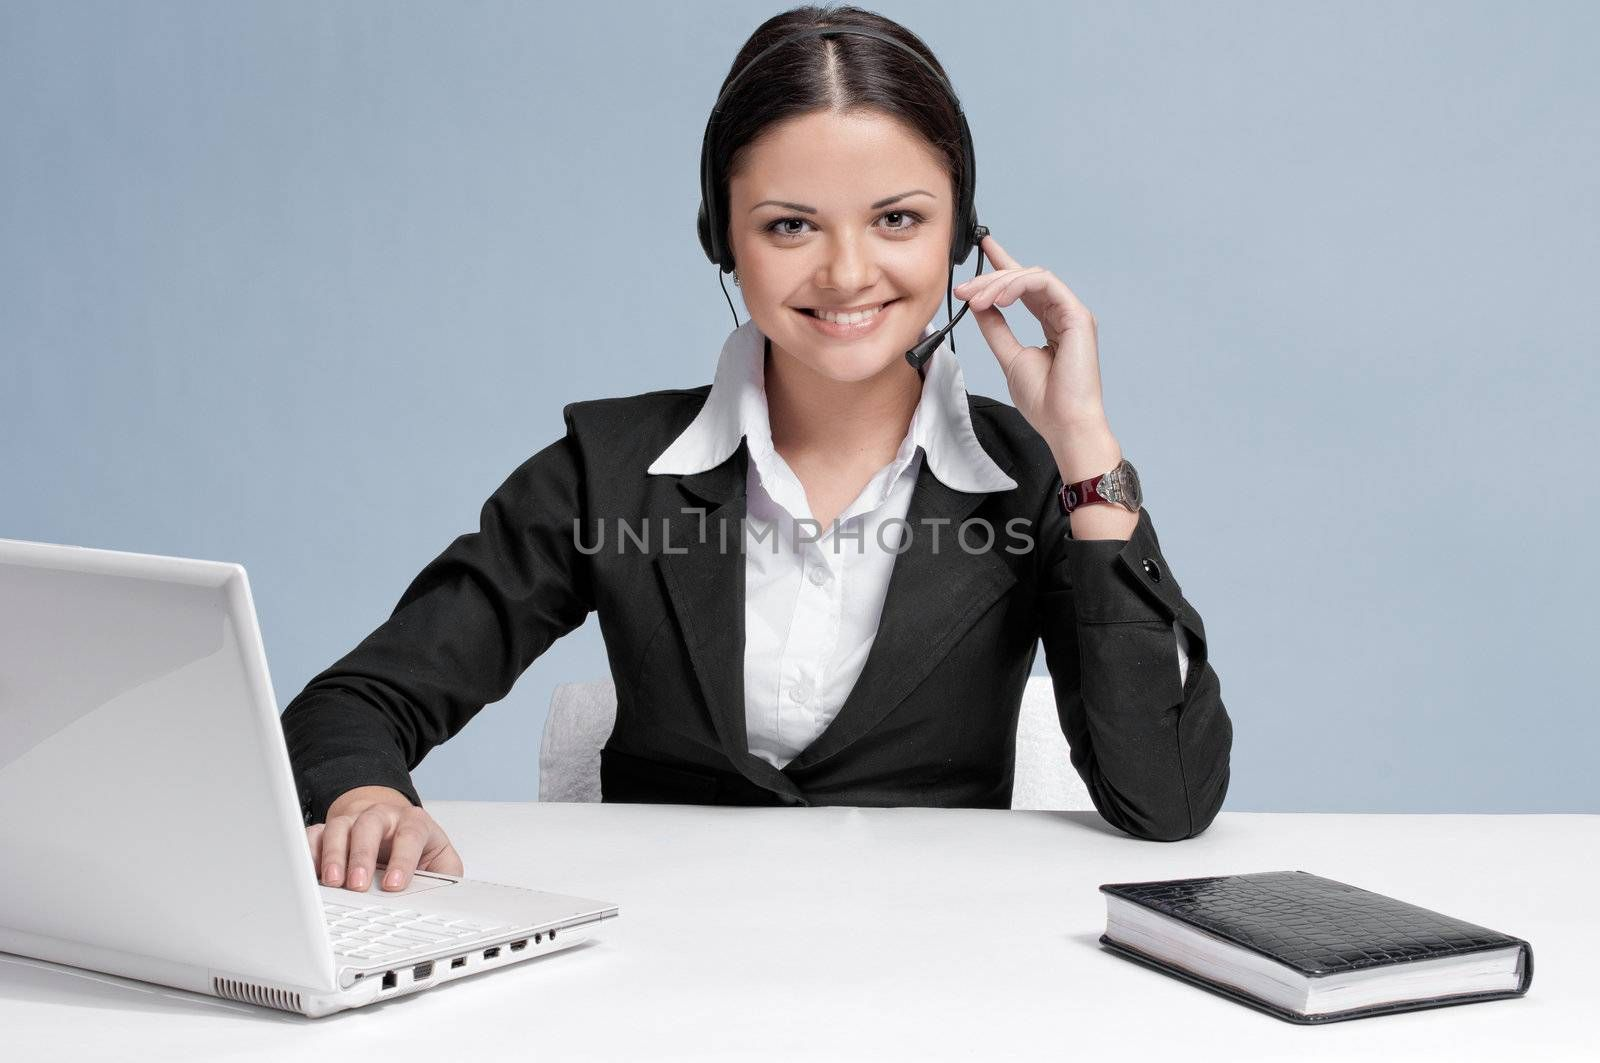 Busy business woman in office place talking by wireless headset over white table, laptop and diary. Smile